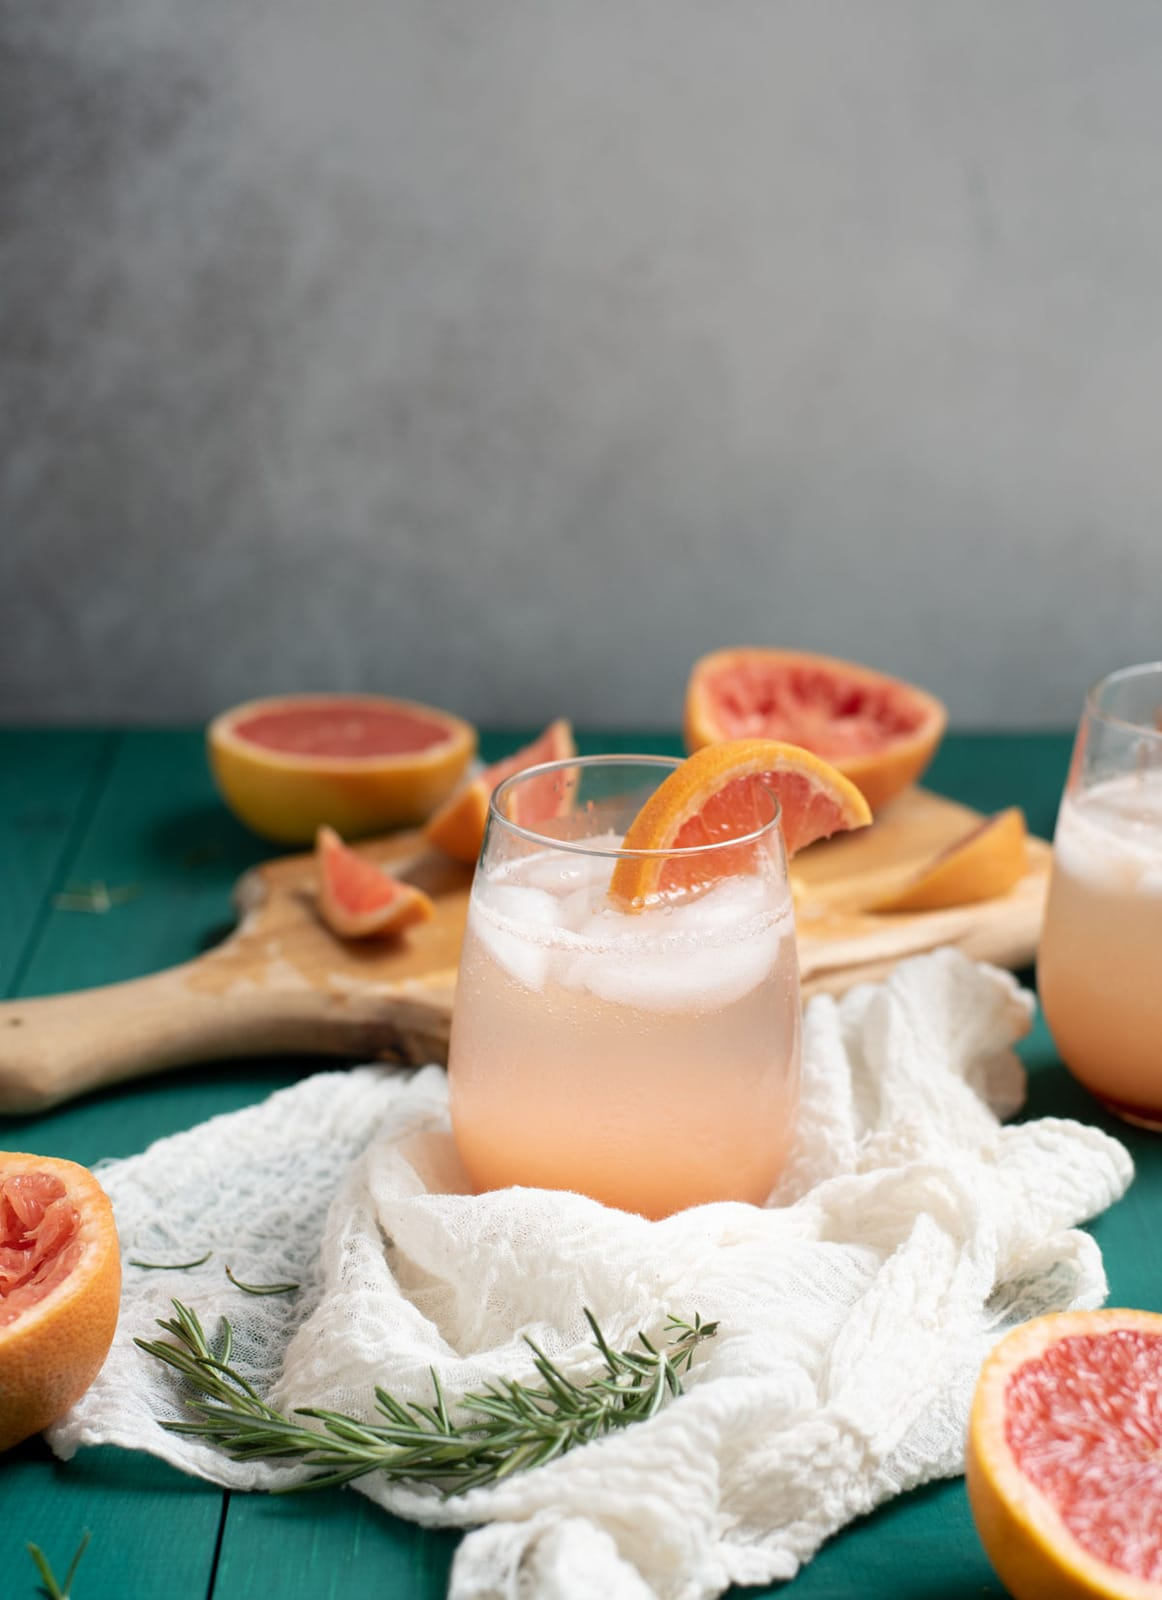 Rosemary grapefruit mocktail in glass with ice cubes